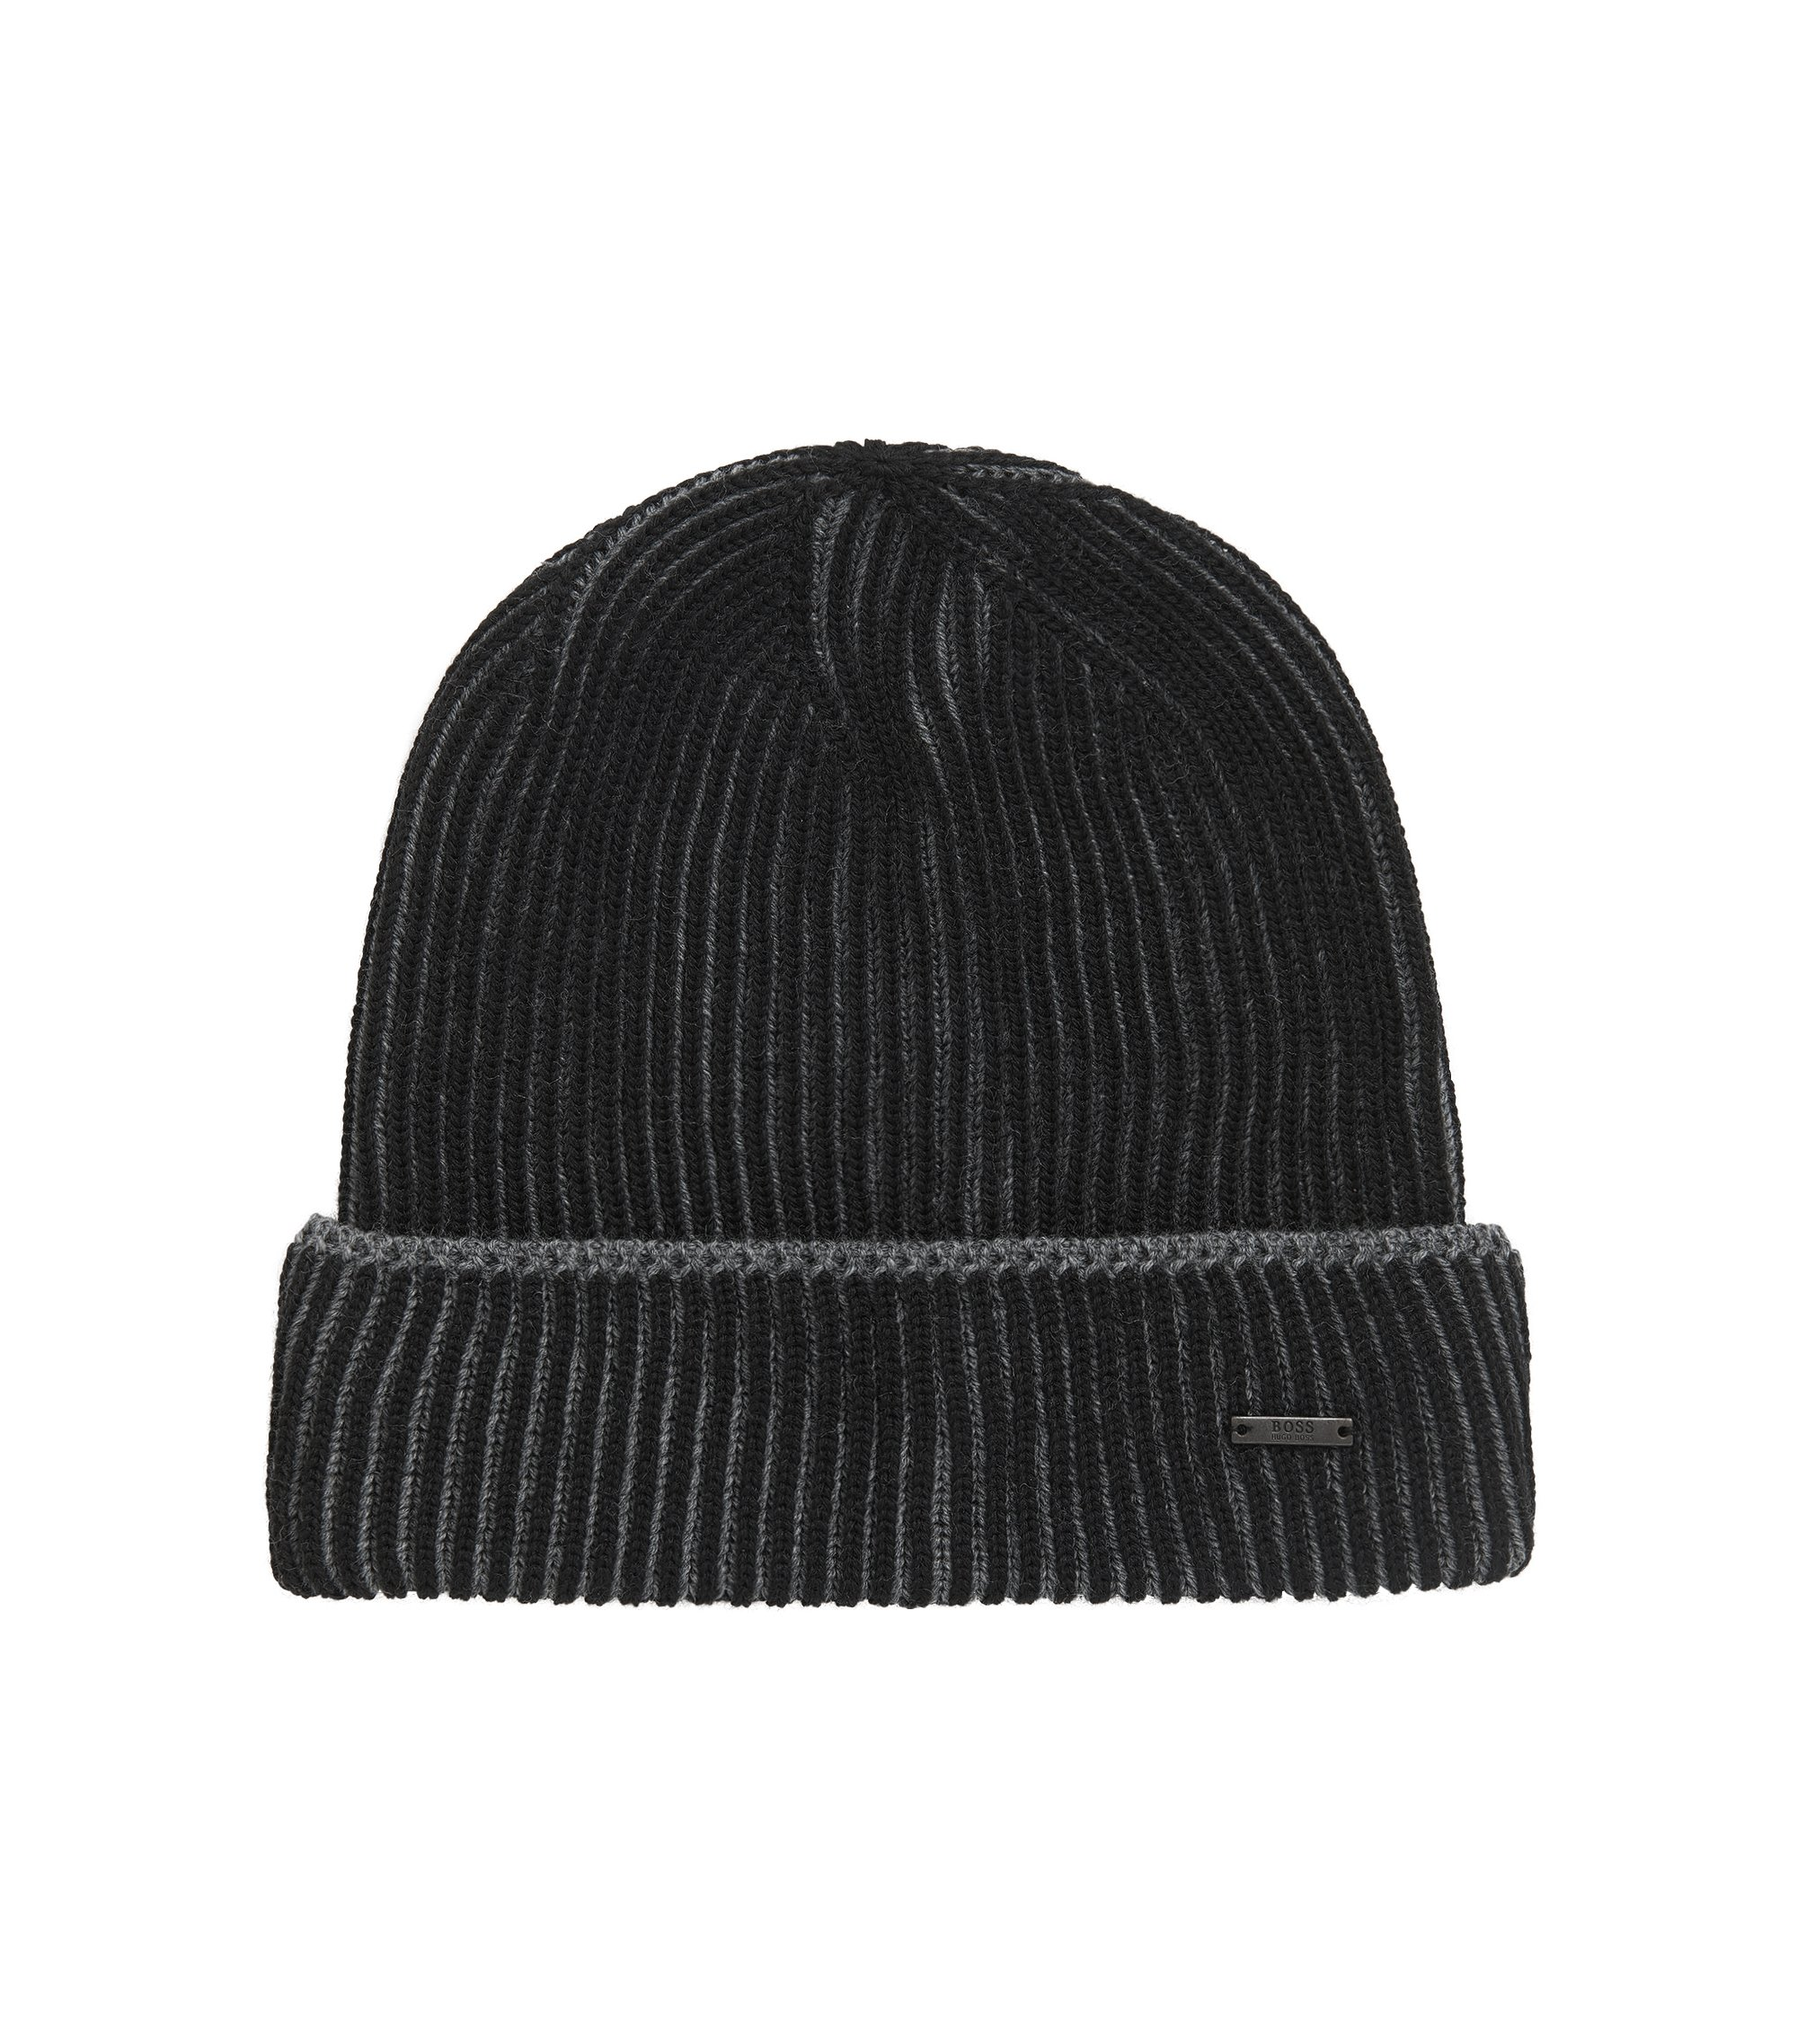 Virgin Wool Beanie | Balerio WS, Black